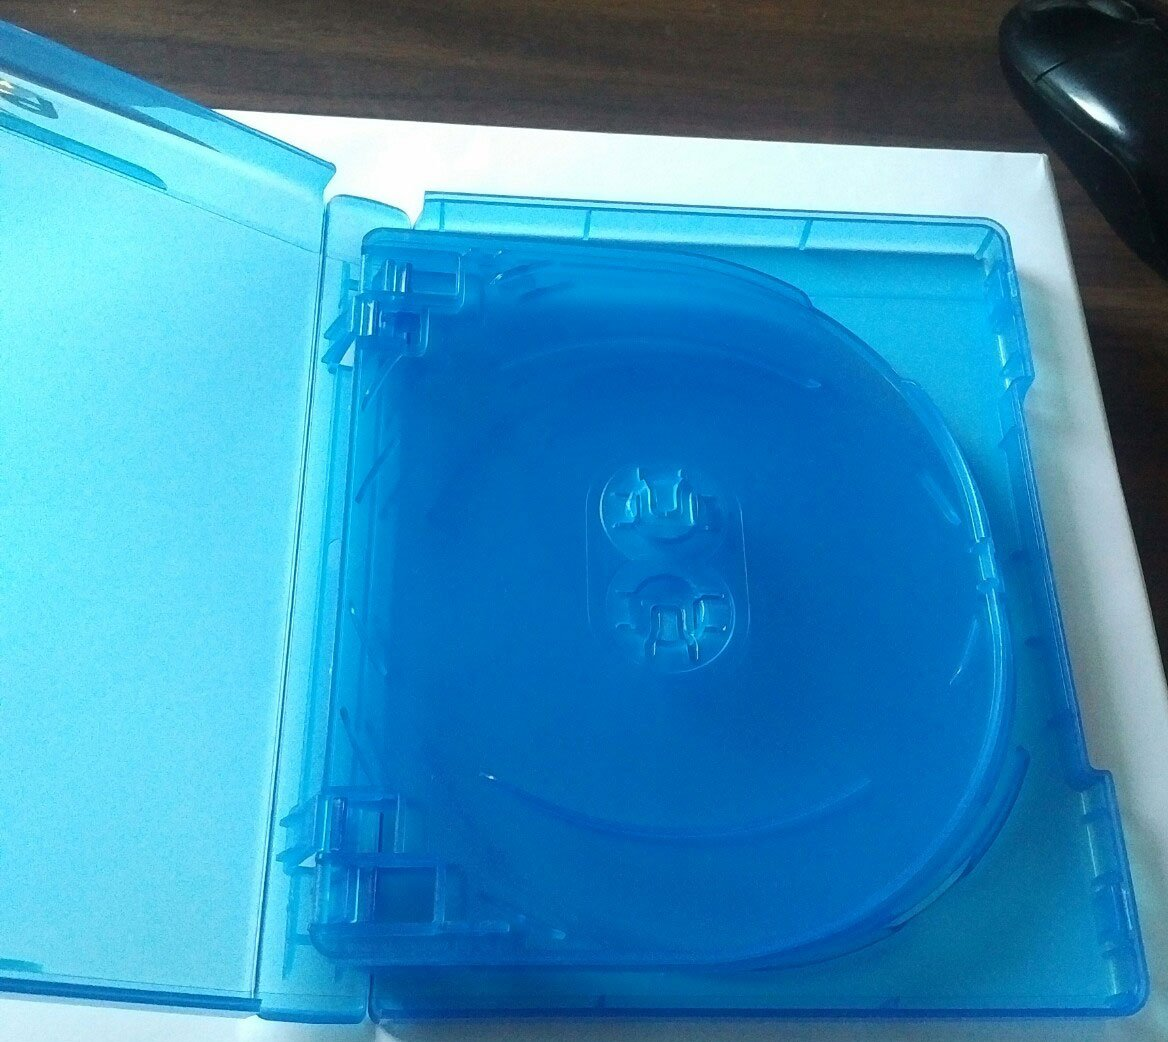 NEW! 3 Pk 22 mm VIVA ELITE Blu-Ray Replace Case Hold 5 Discs (5 Tray) Blue